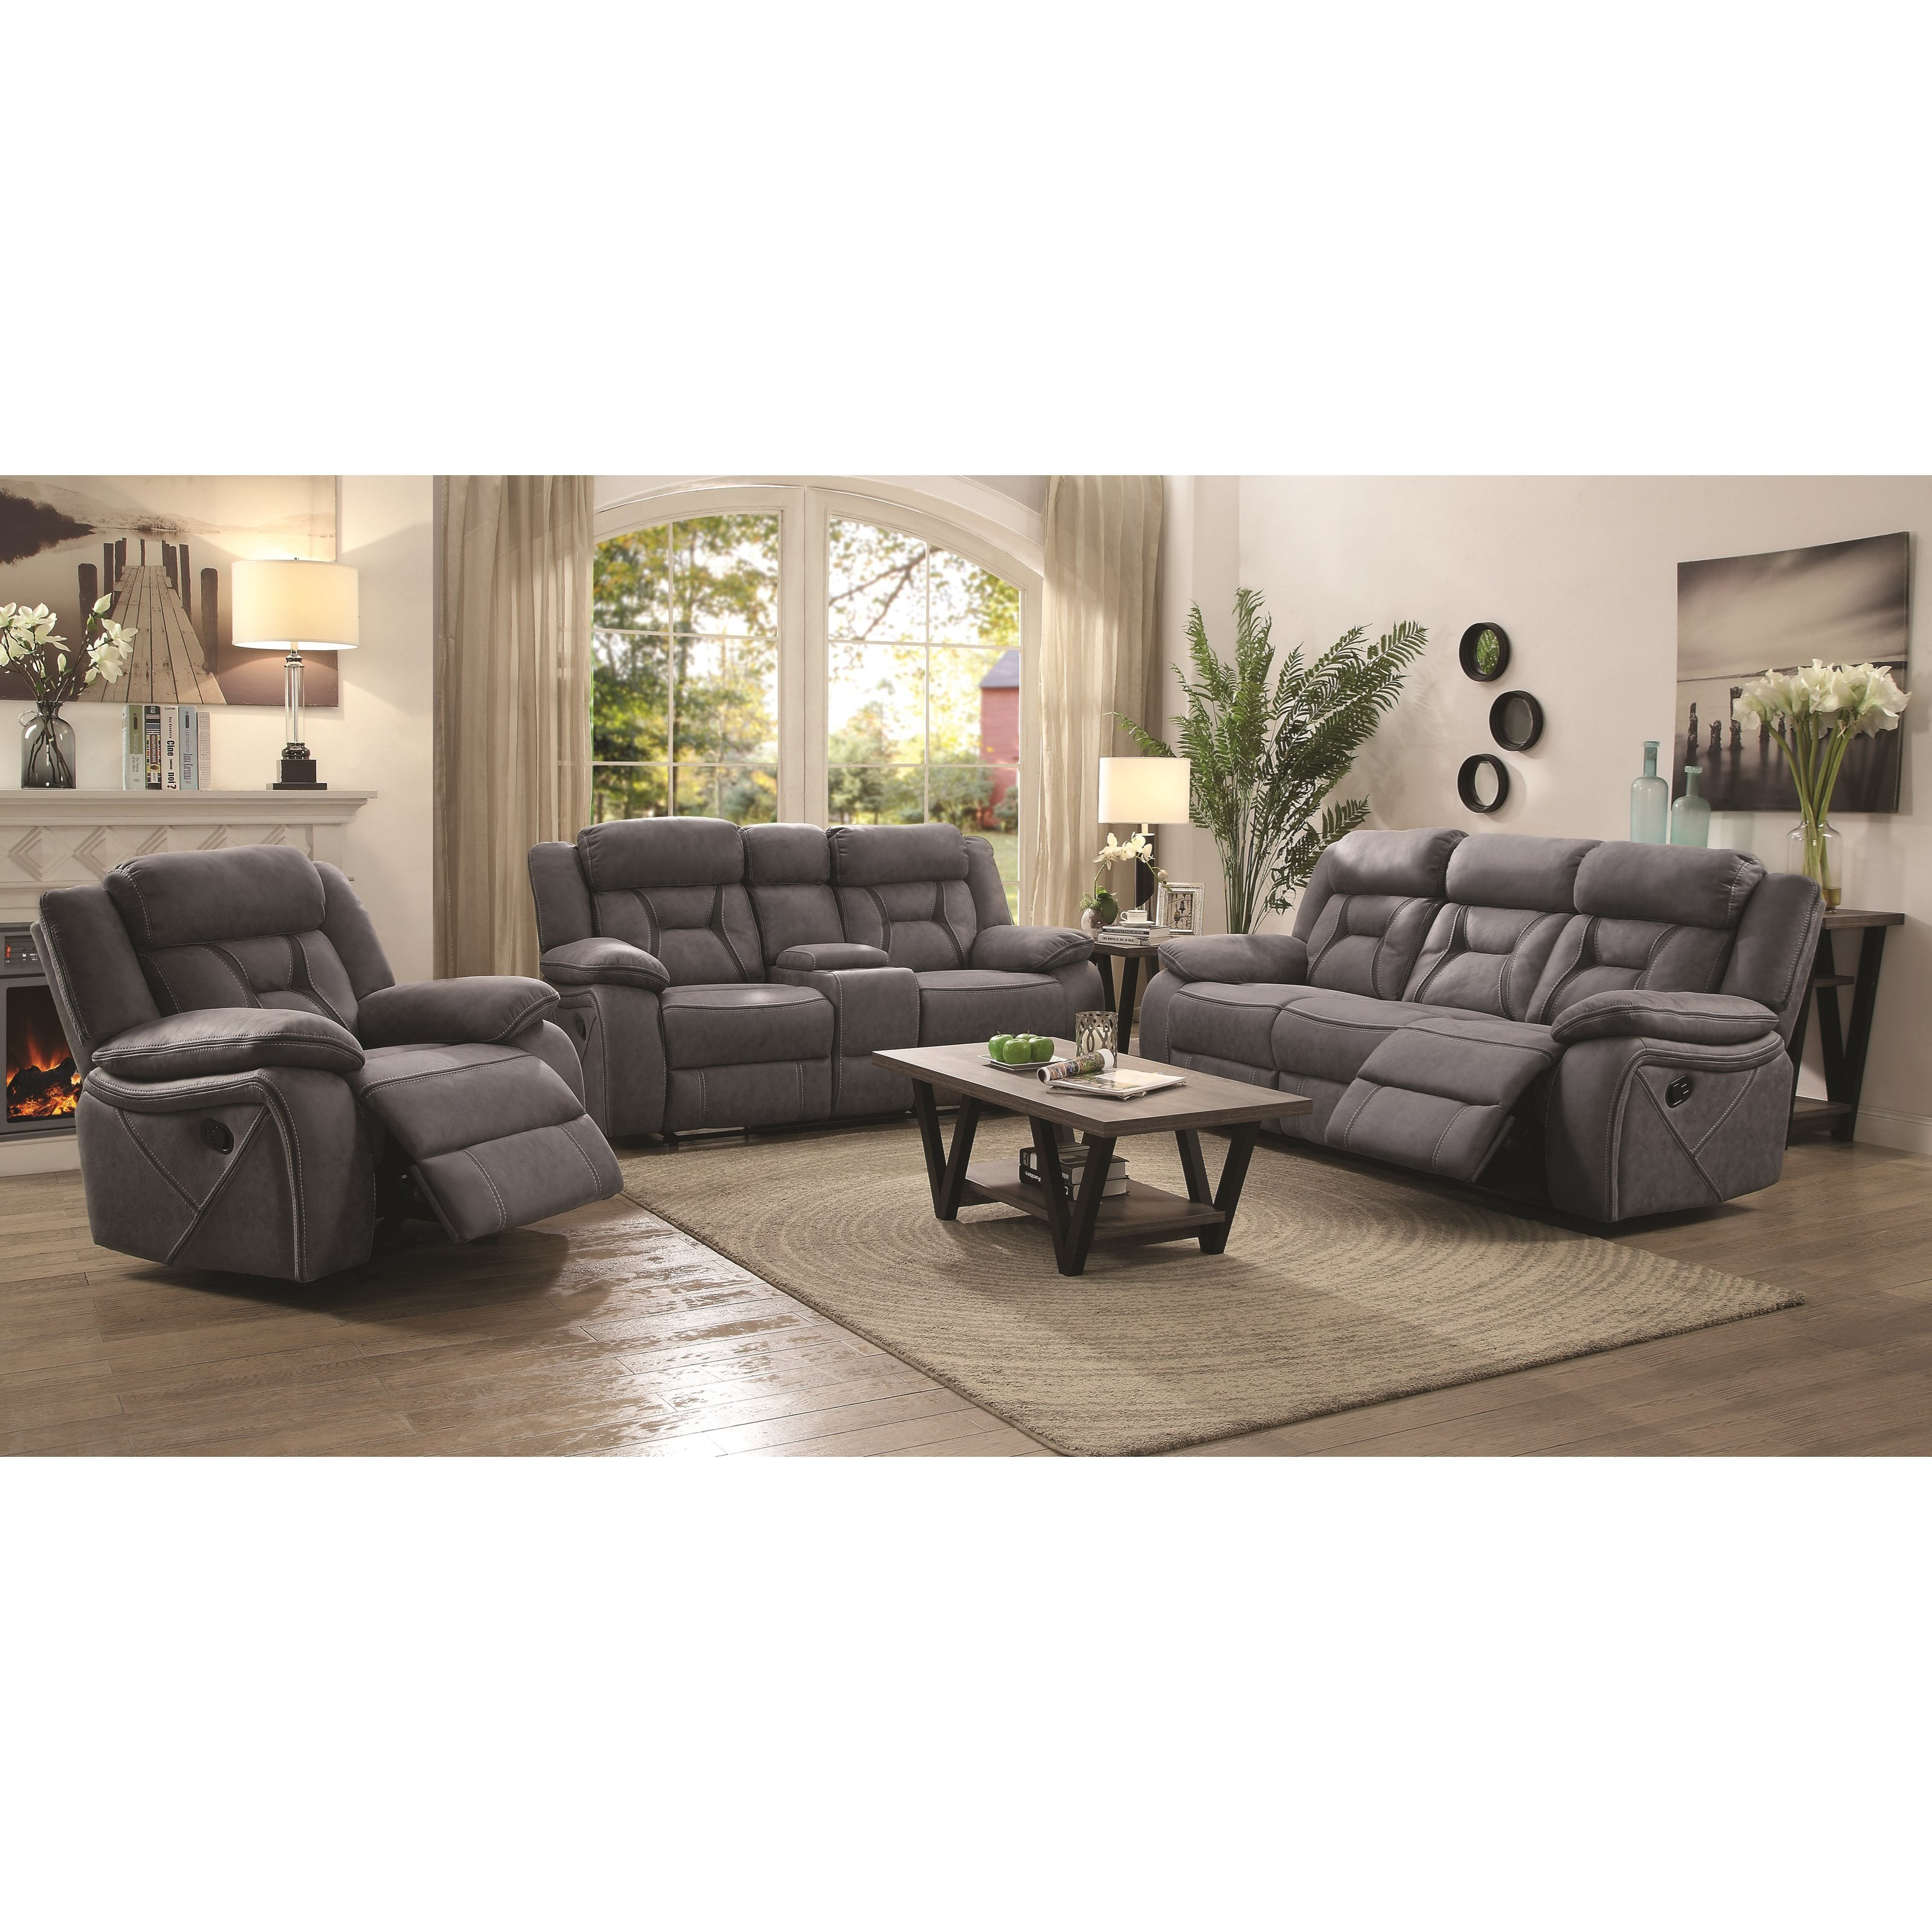 Houston Reclining Living Room Group by Coaster at Northeast Factory Direct